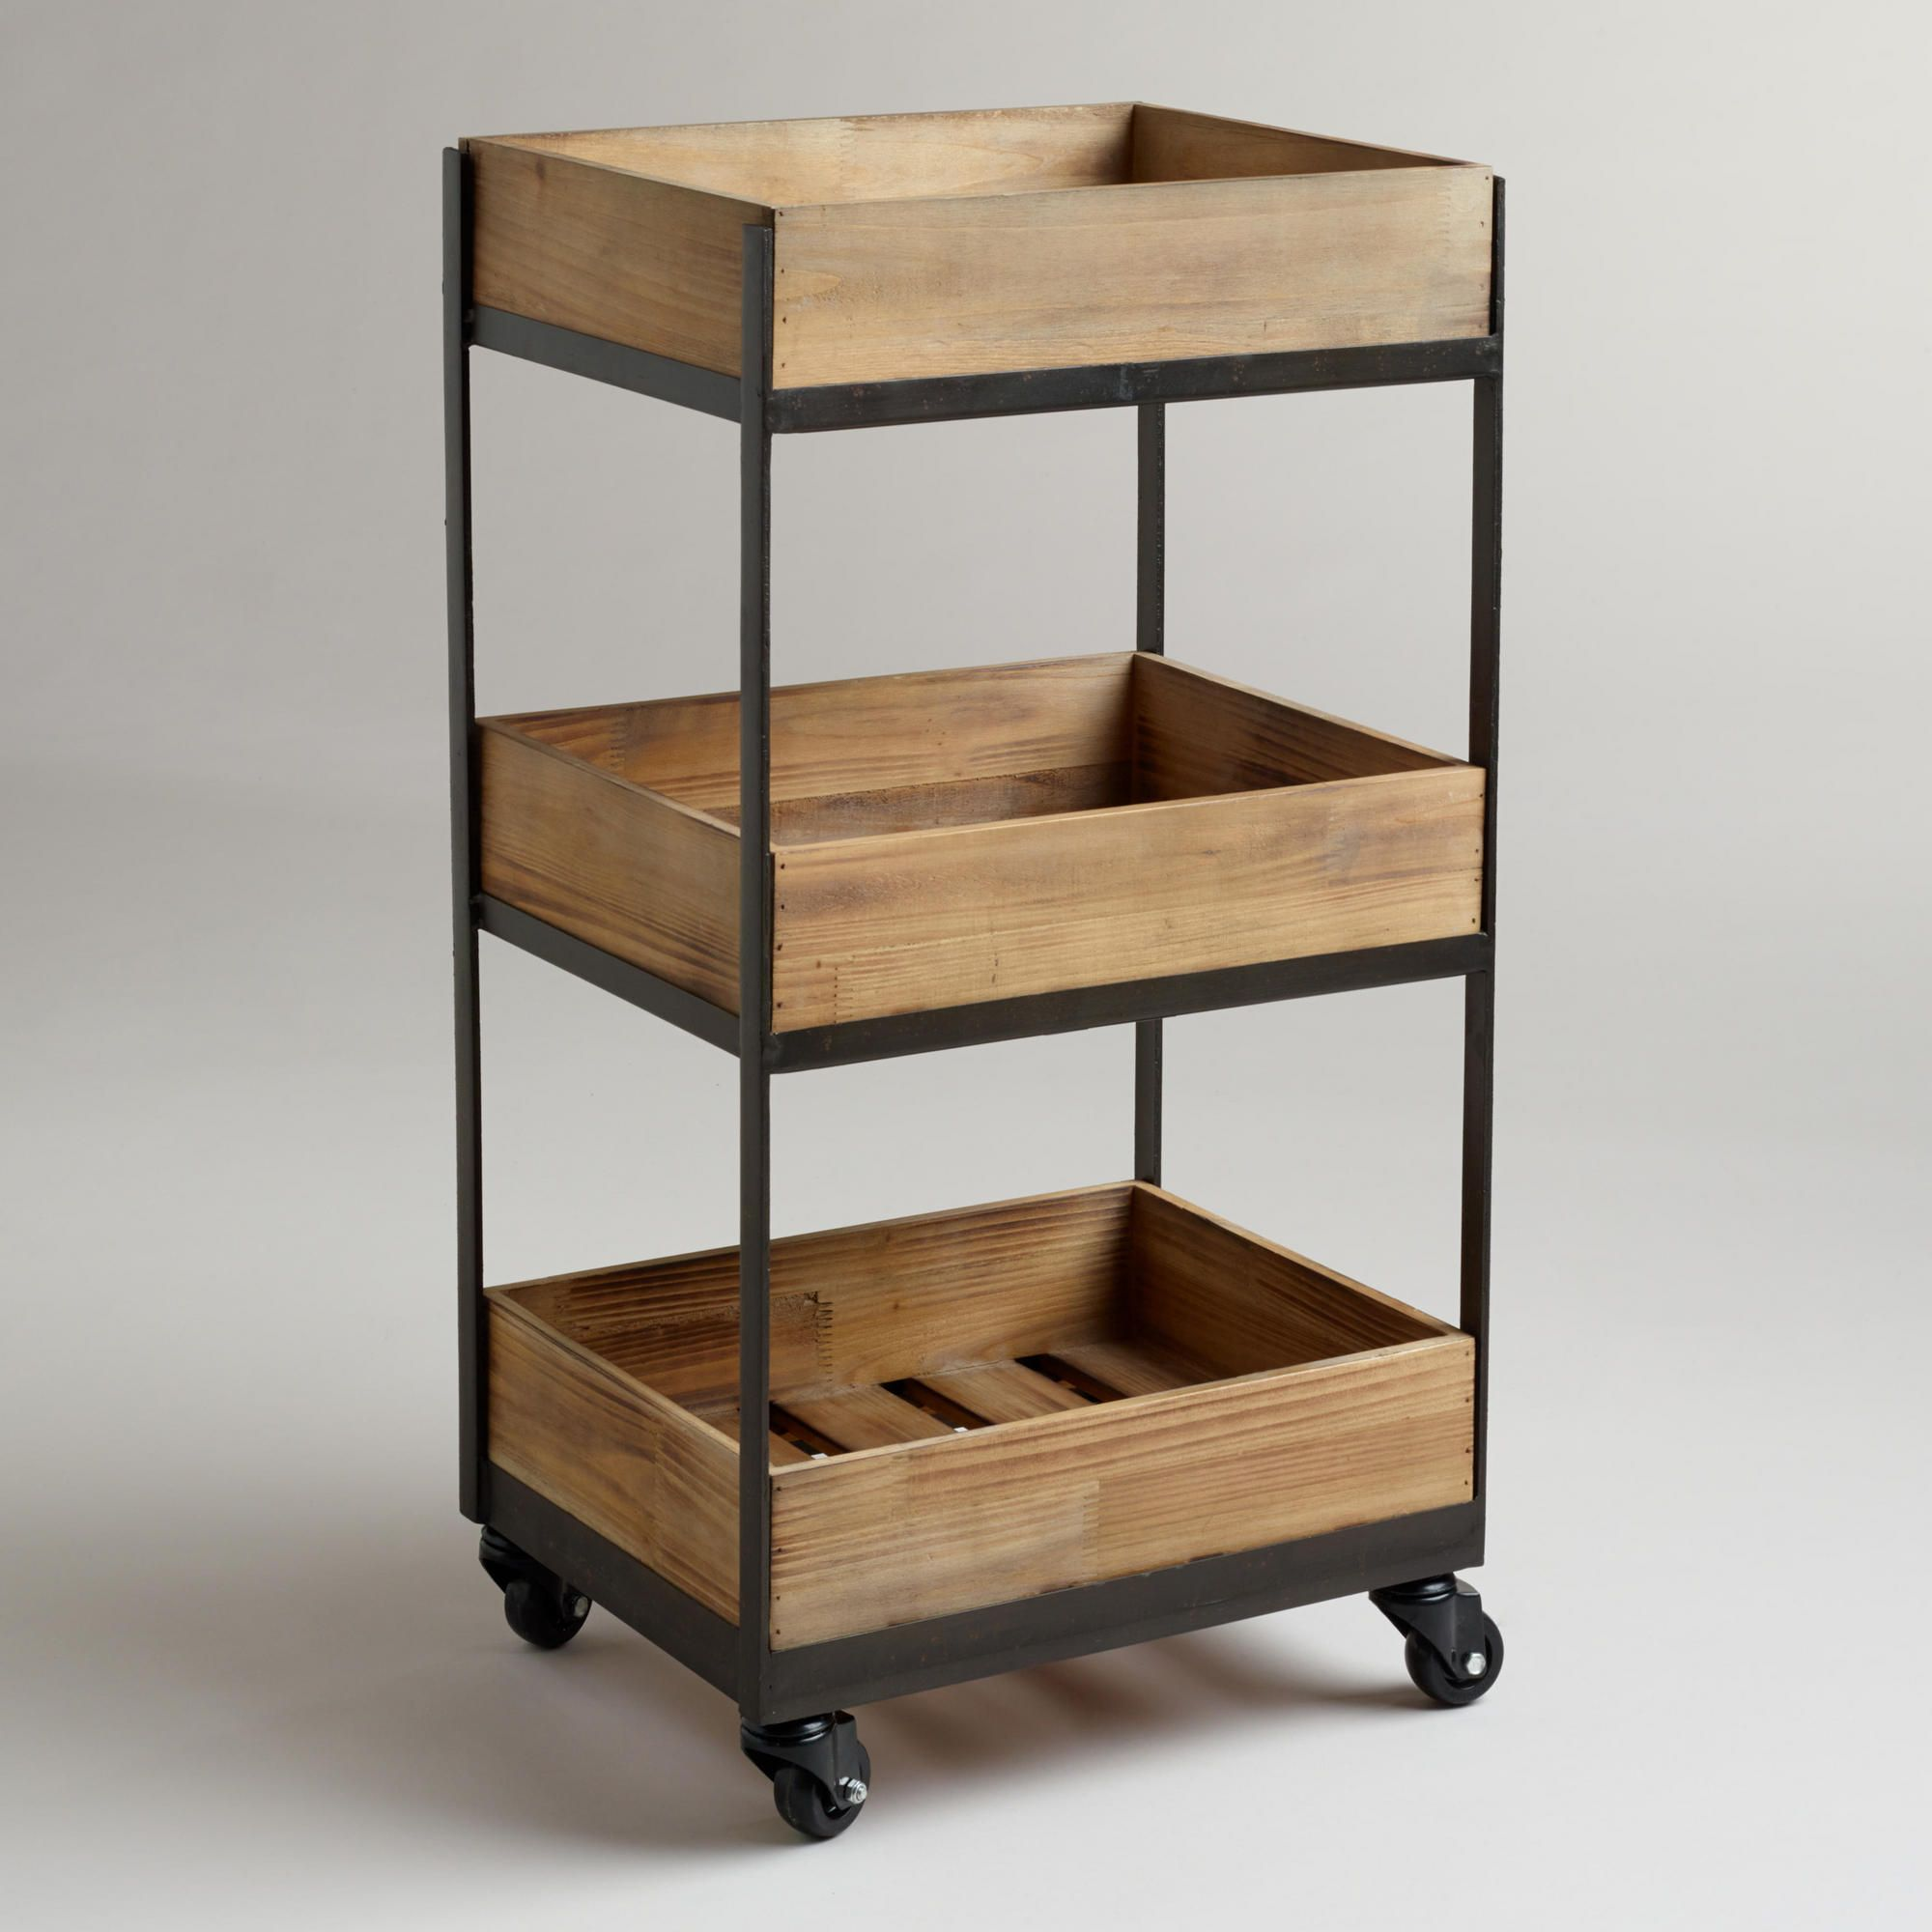 3 Shelf Wooden Gavin Rolling Cart Don T You Love It I